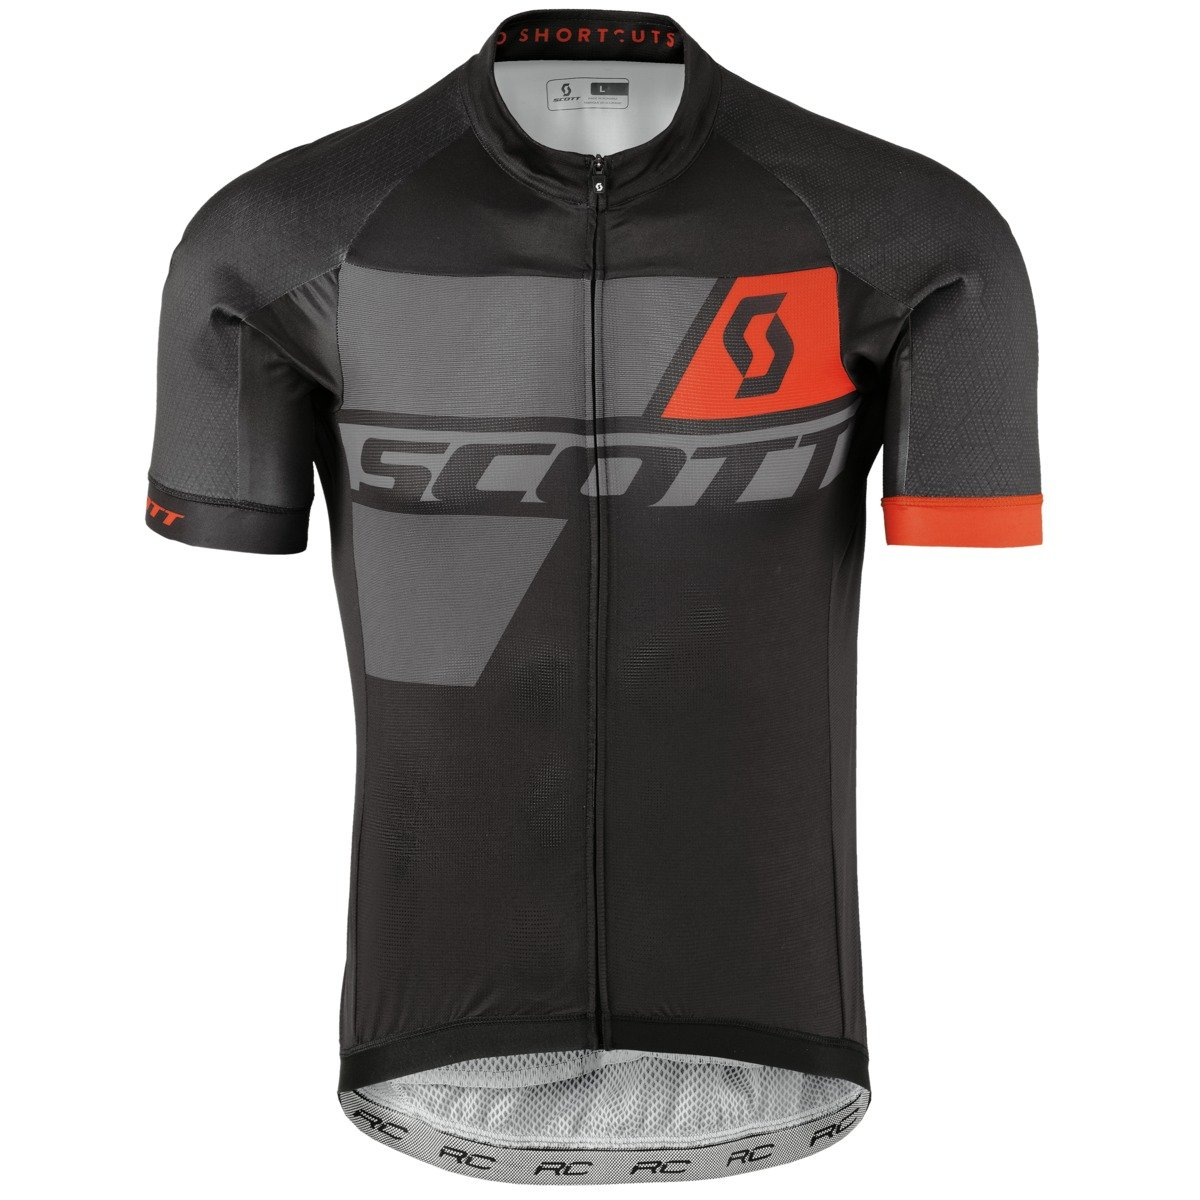 Scott Premium Rc Pro Cycling Jersey Black Grey Orange 2017 1ef26e7ad